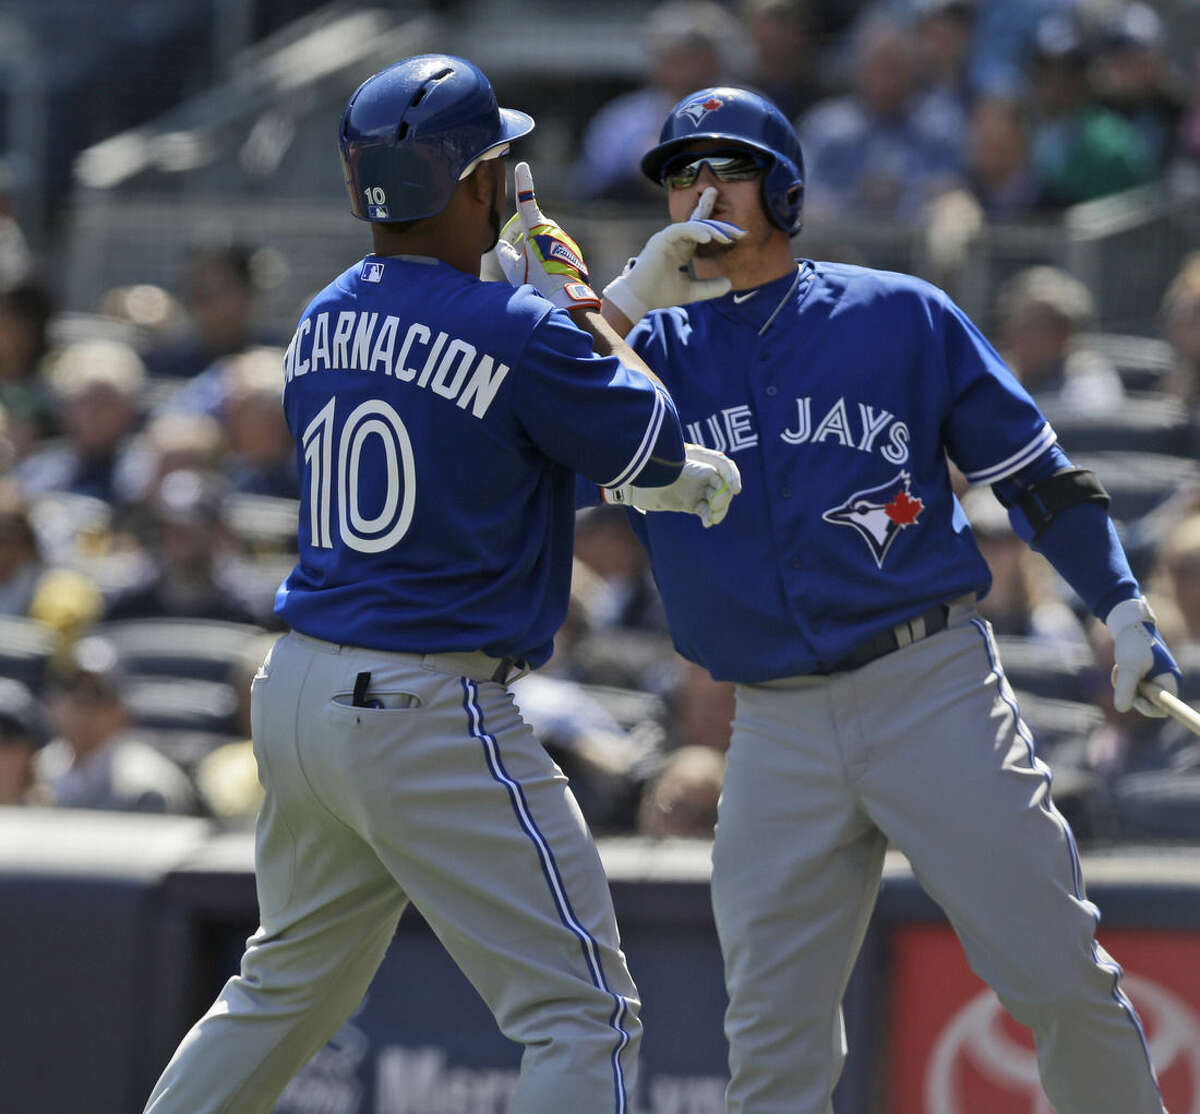 Toronto Blue Jays' Edwin Encarnacion, left, celebrates his home run with Josh Donaldson during the third inning of the baseball game against the New York Yankees at Yankee Stadium, Monday, April 6, 2015 in New York. (AP Photo/Seth Wenig)